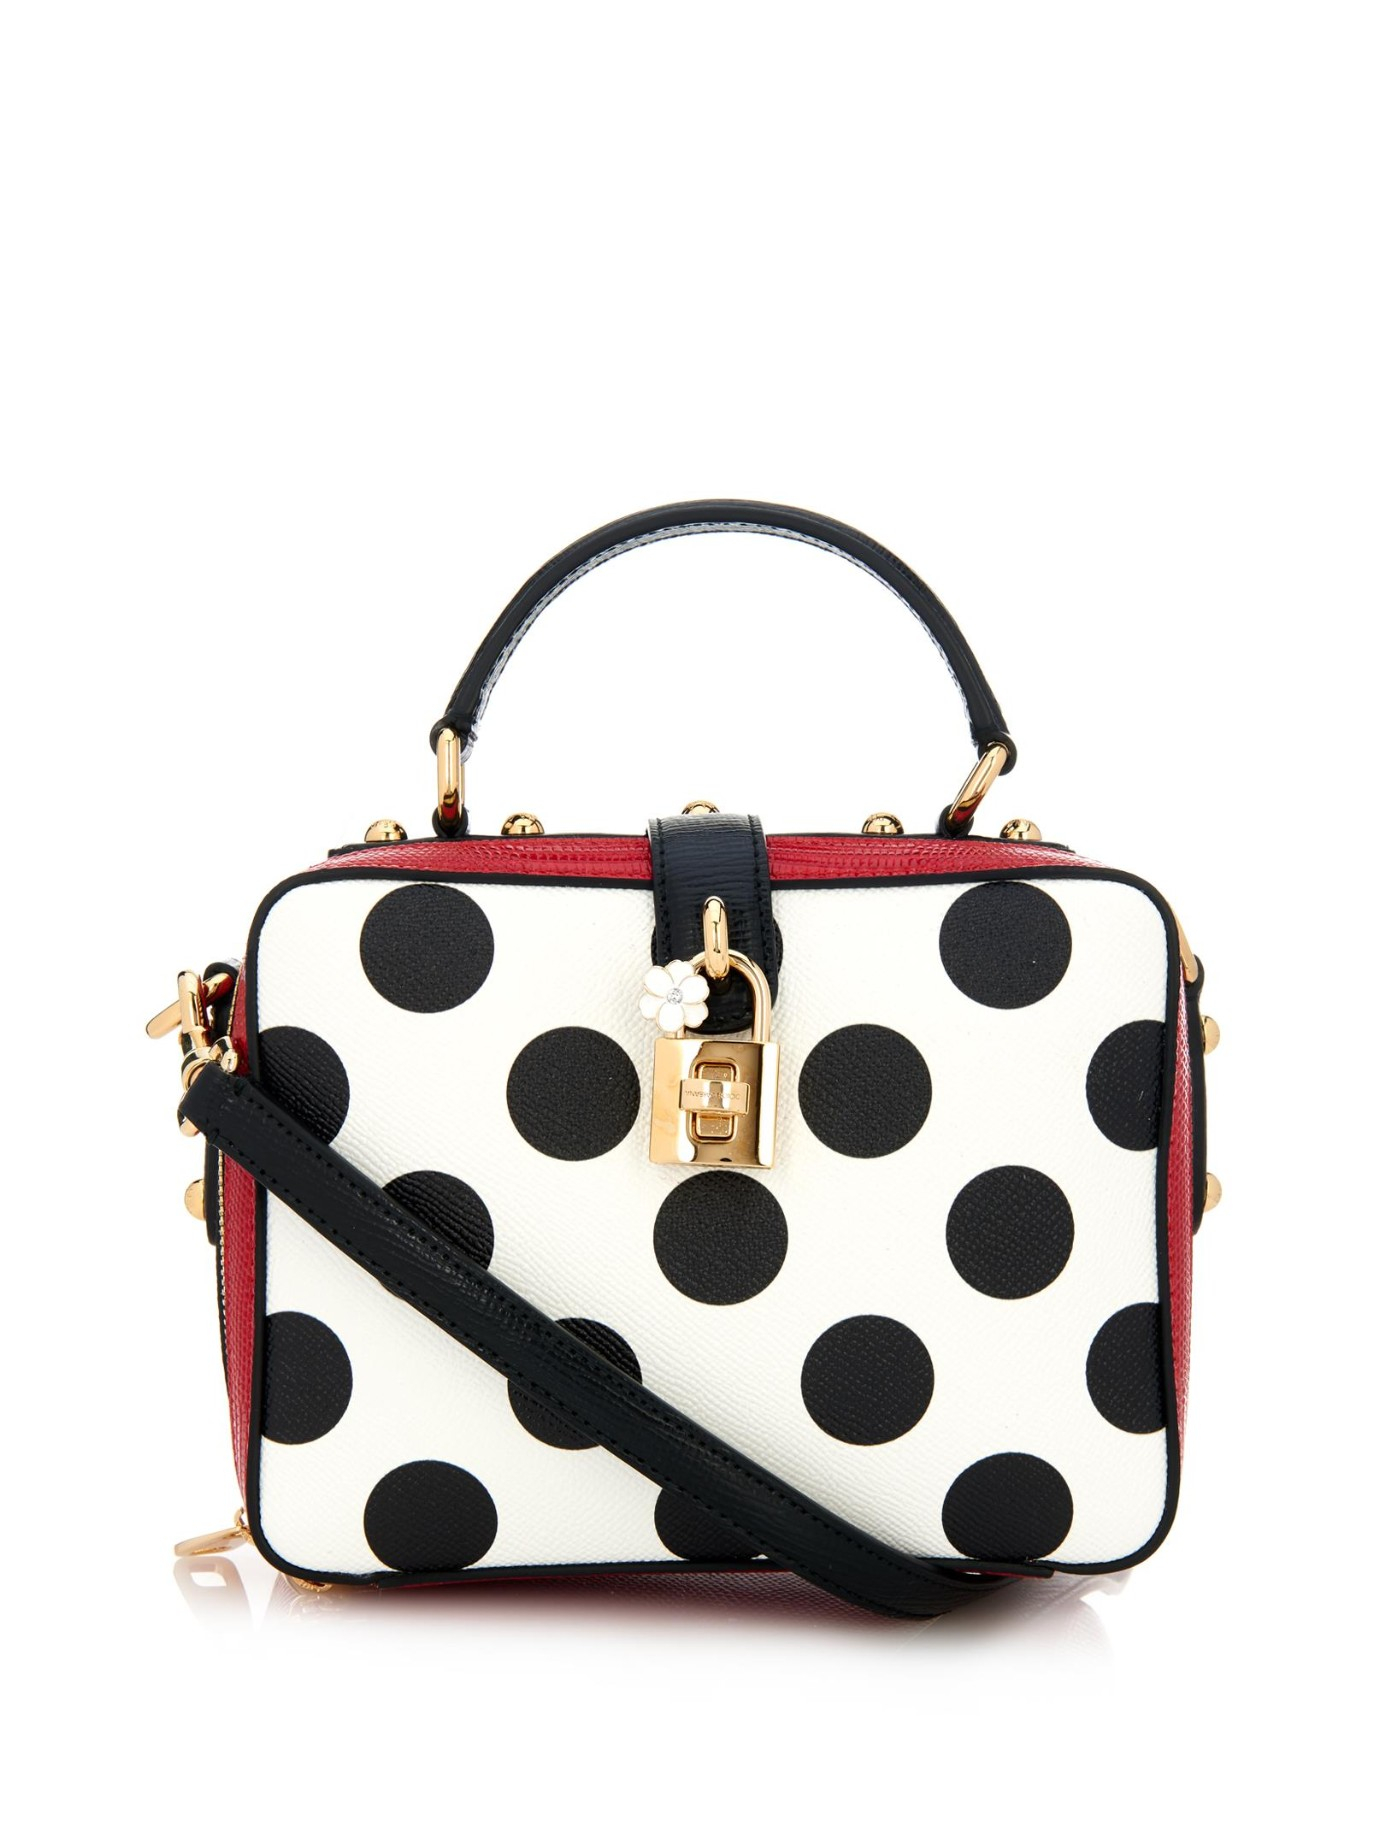 1b0a87d4aaf6 Lyst - Dolce   Gabbana Rosaria Polka-Dot Cross-Body Bag in Black